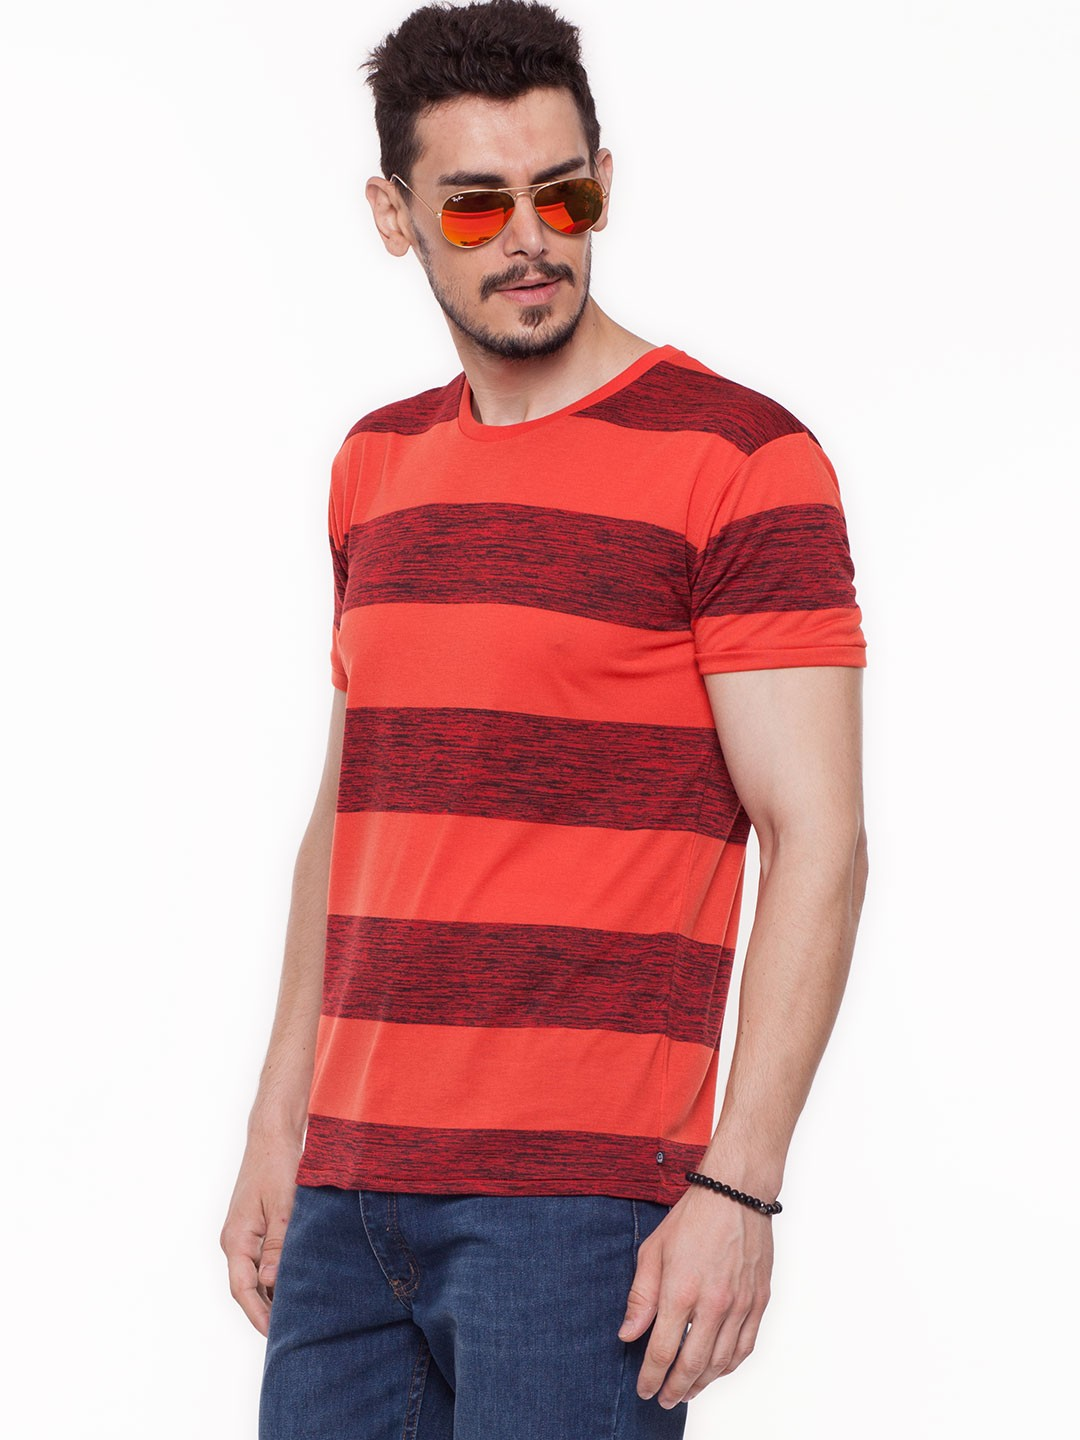 Buy cheap monday red stripe t shirt in the style of shahid for Cheap t shirt online